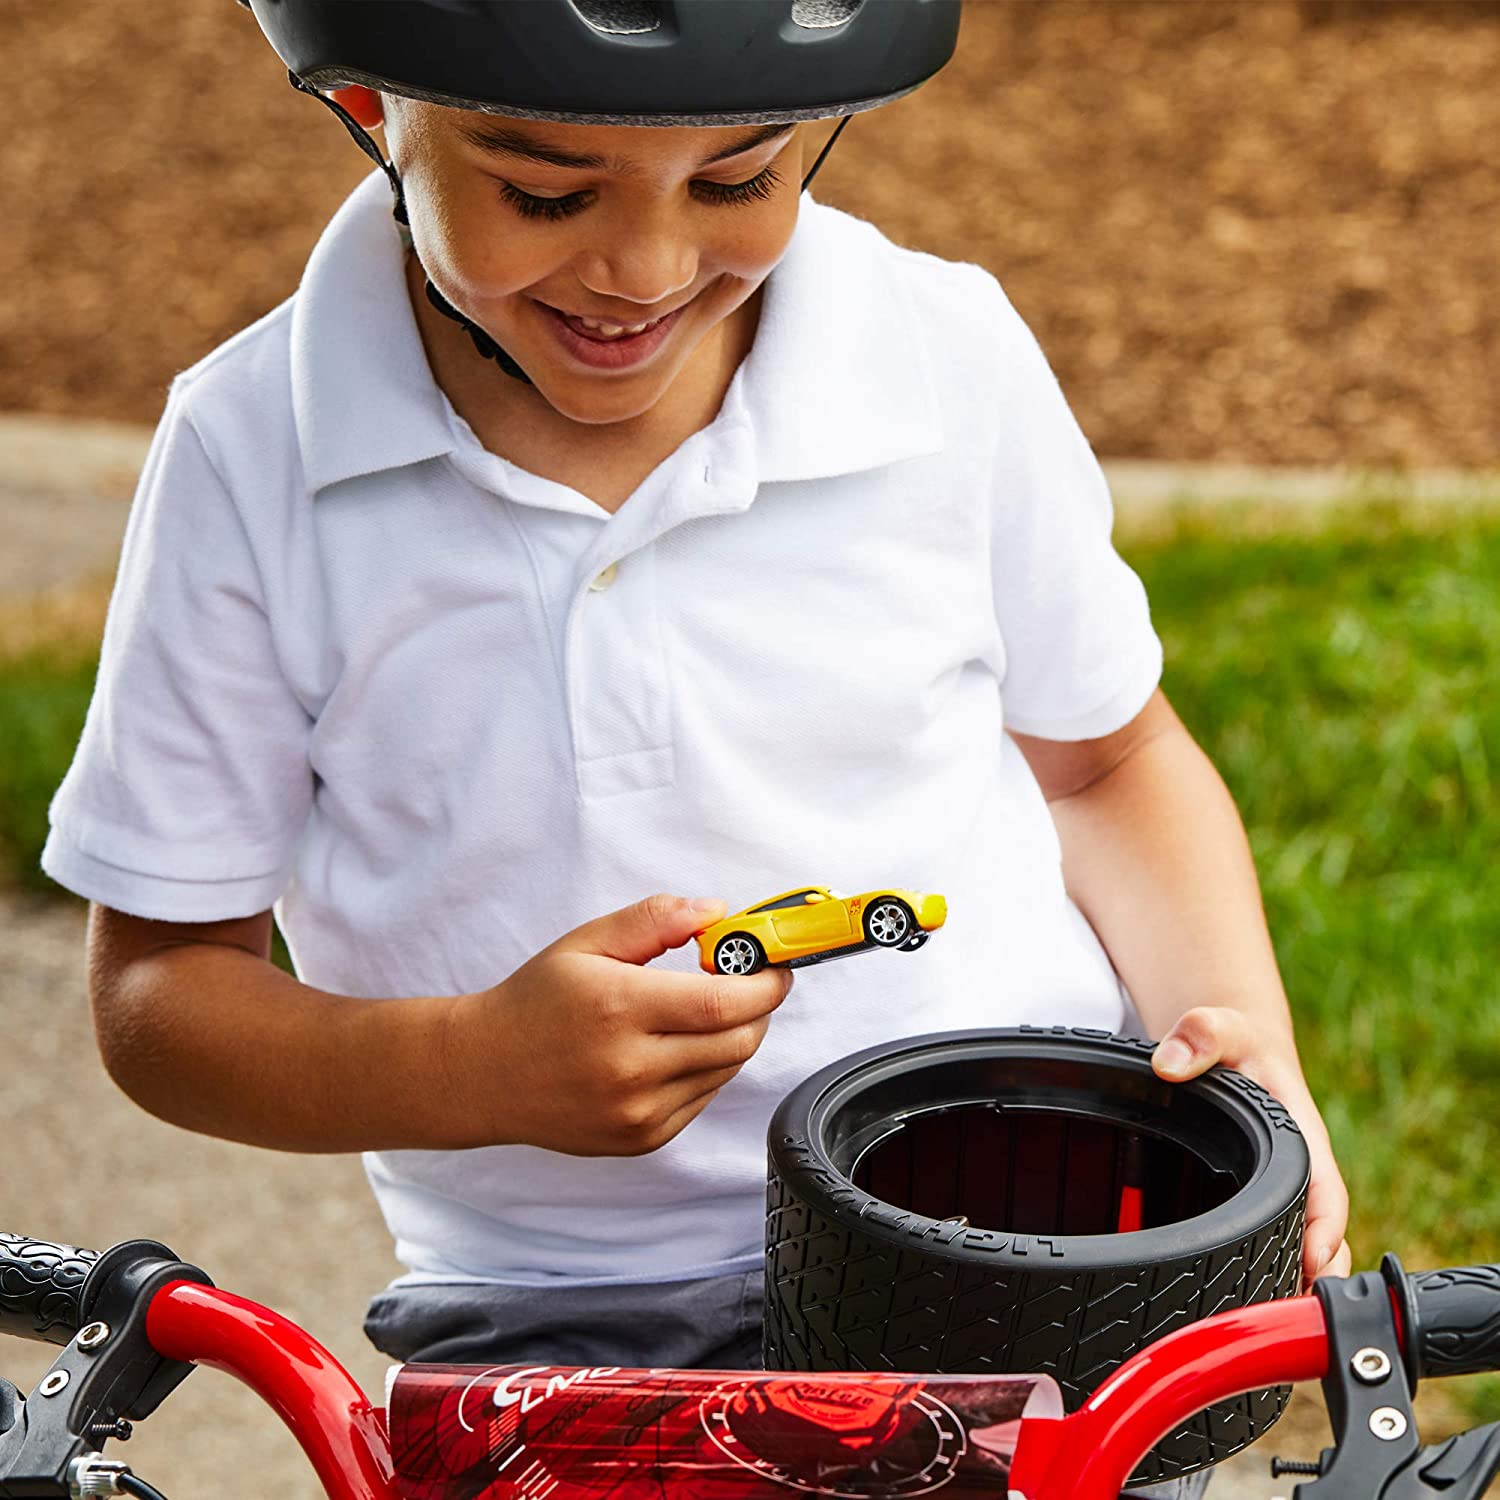 Huffy Disney Cars Boys Bike with Lights /& Sounds Toy Training Wheels